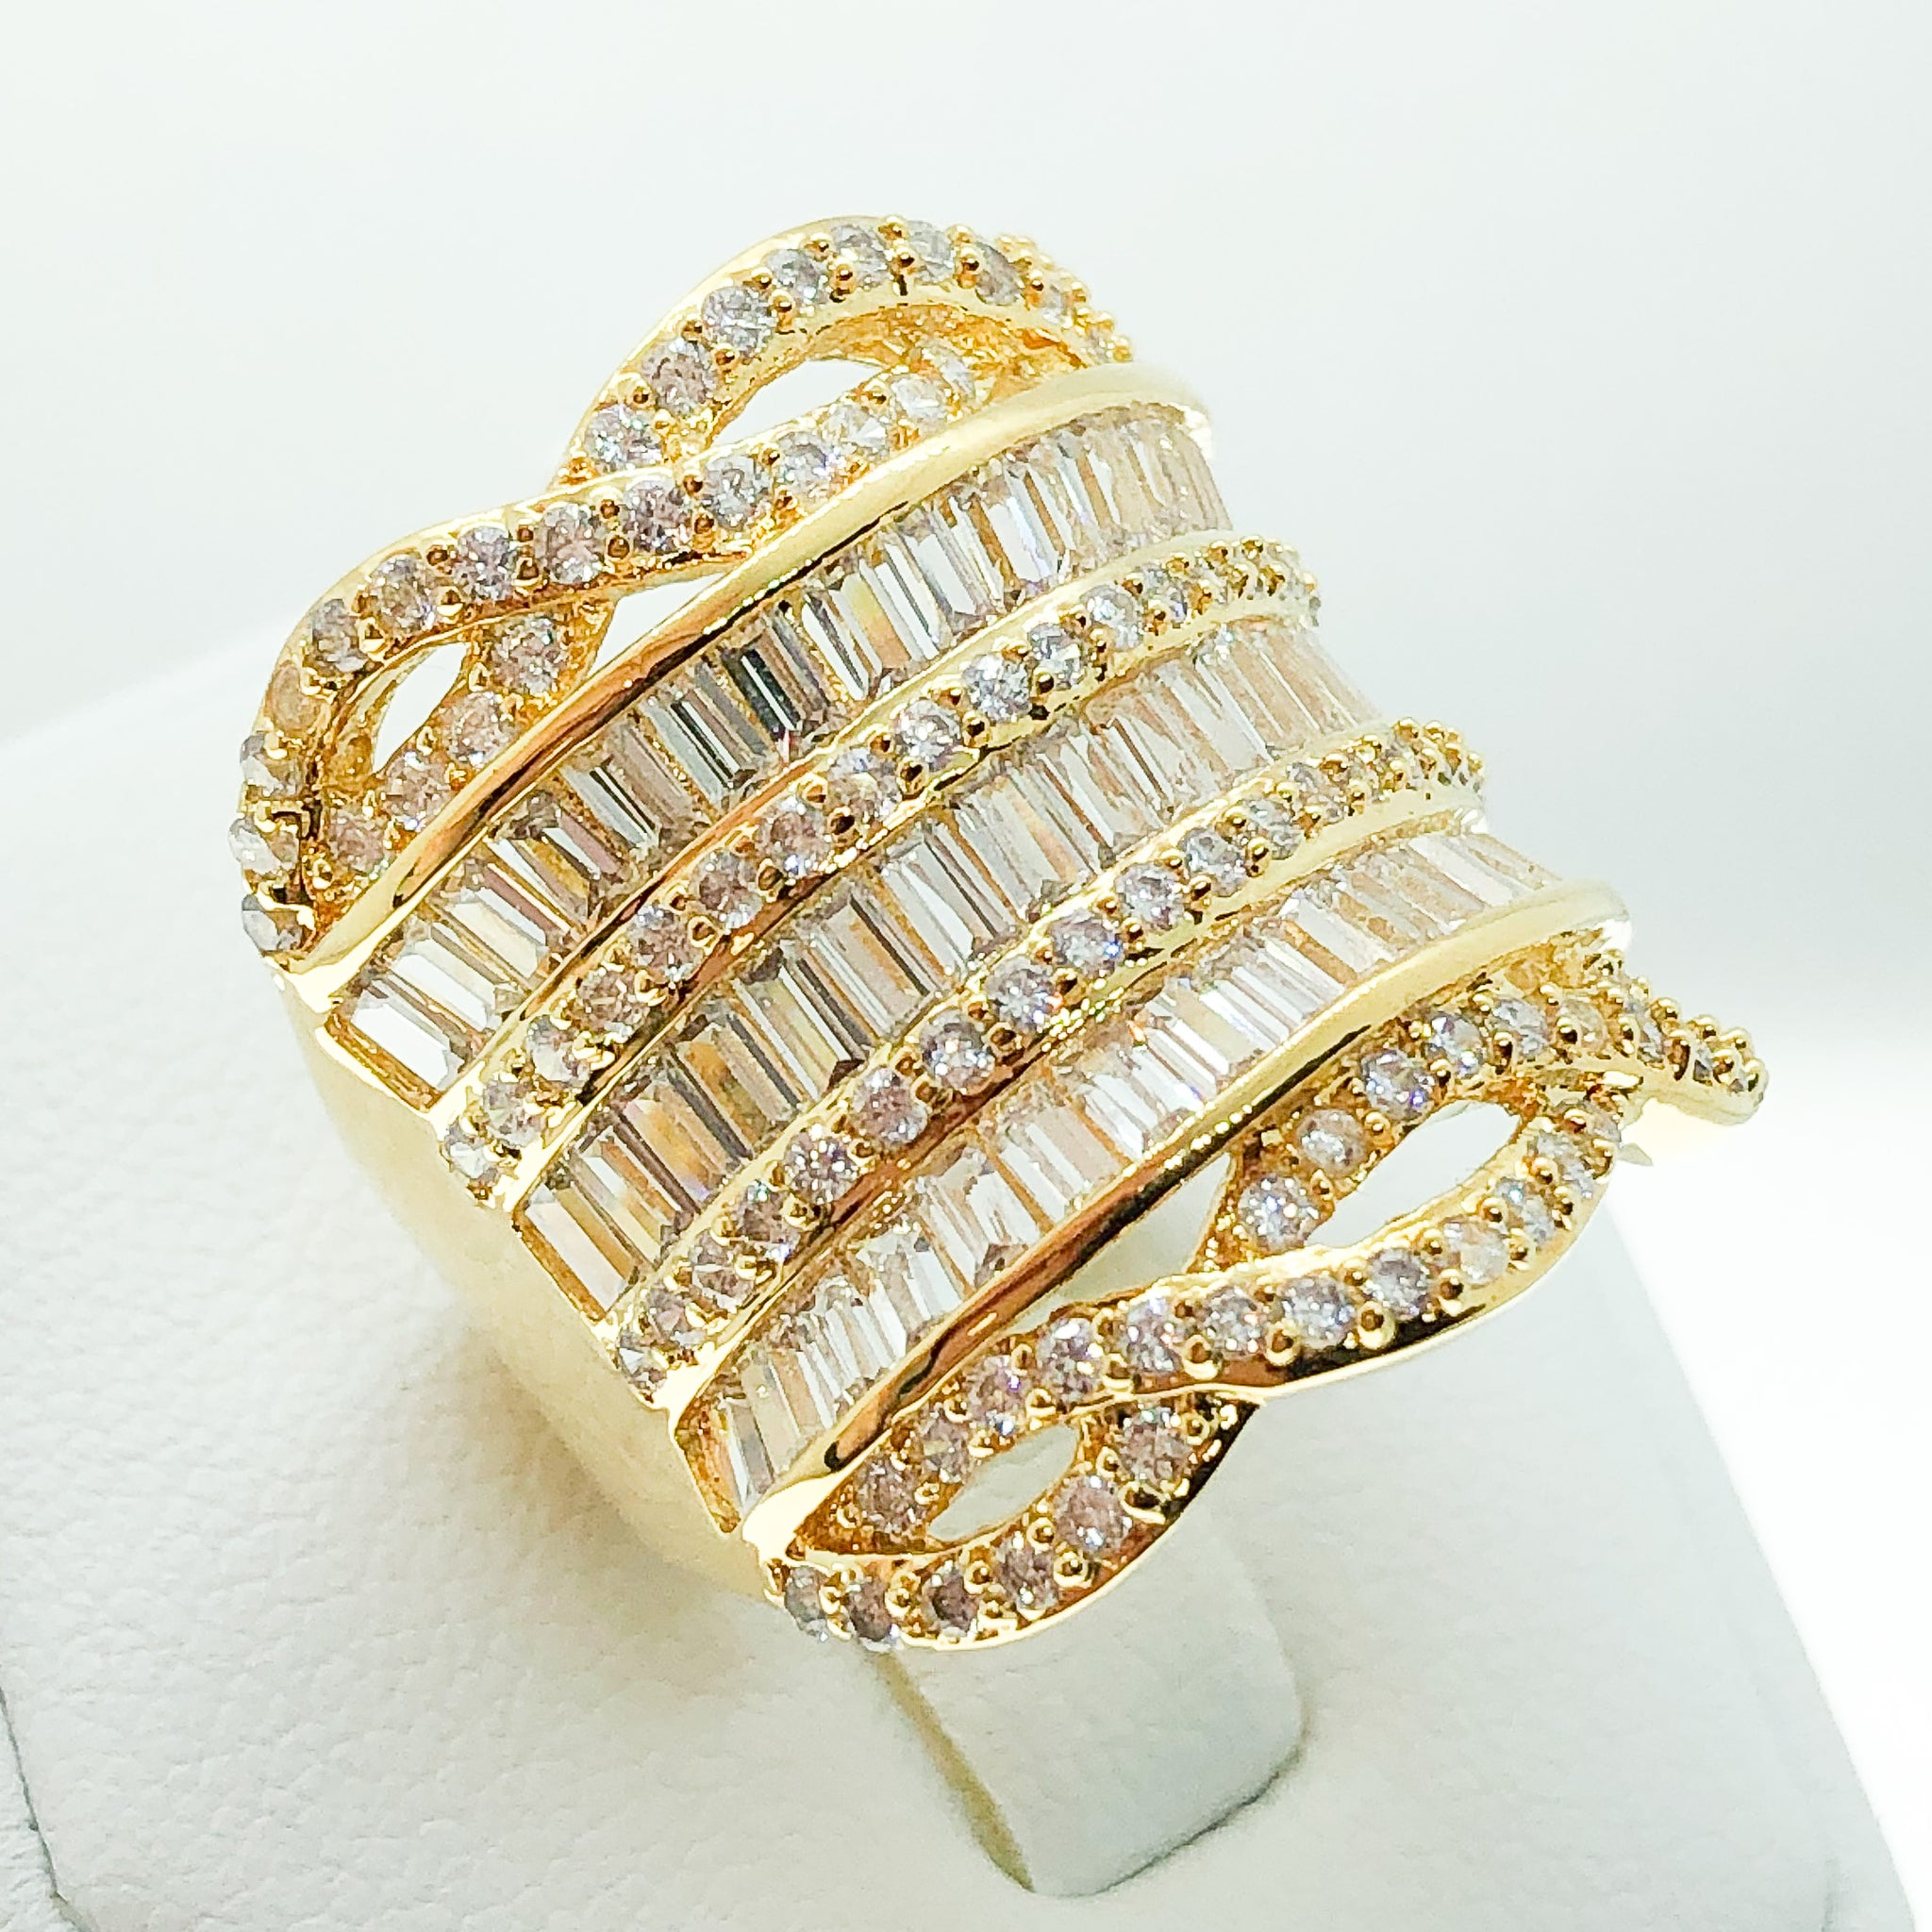 ID:R3938 Women 18K Yellow Gold GF Vintage Jewelry Gorgeous Diamonique Fashionable Cluster Cocktail Ring Anniversary Gift